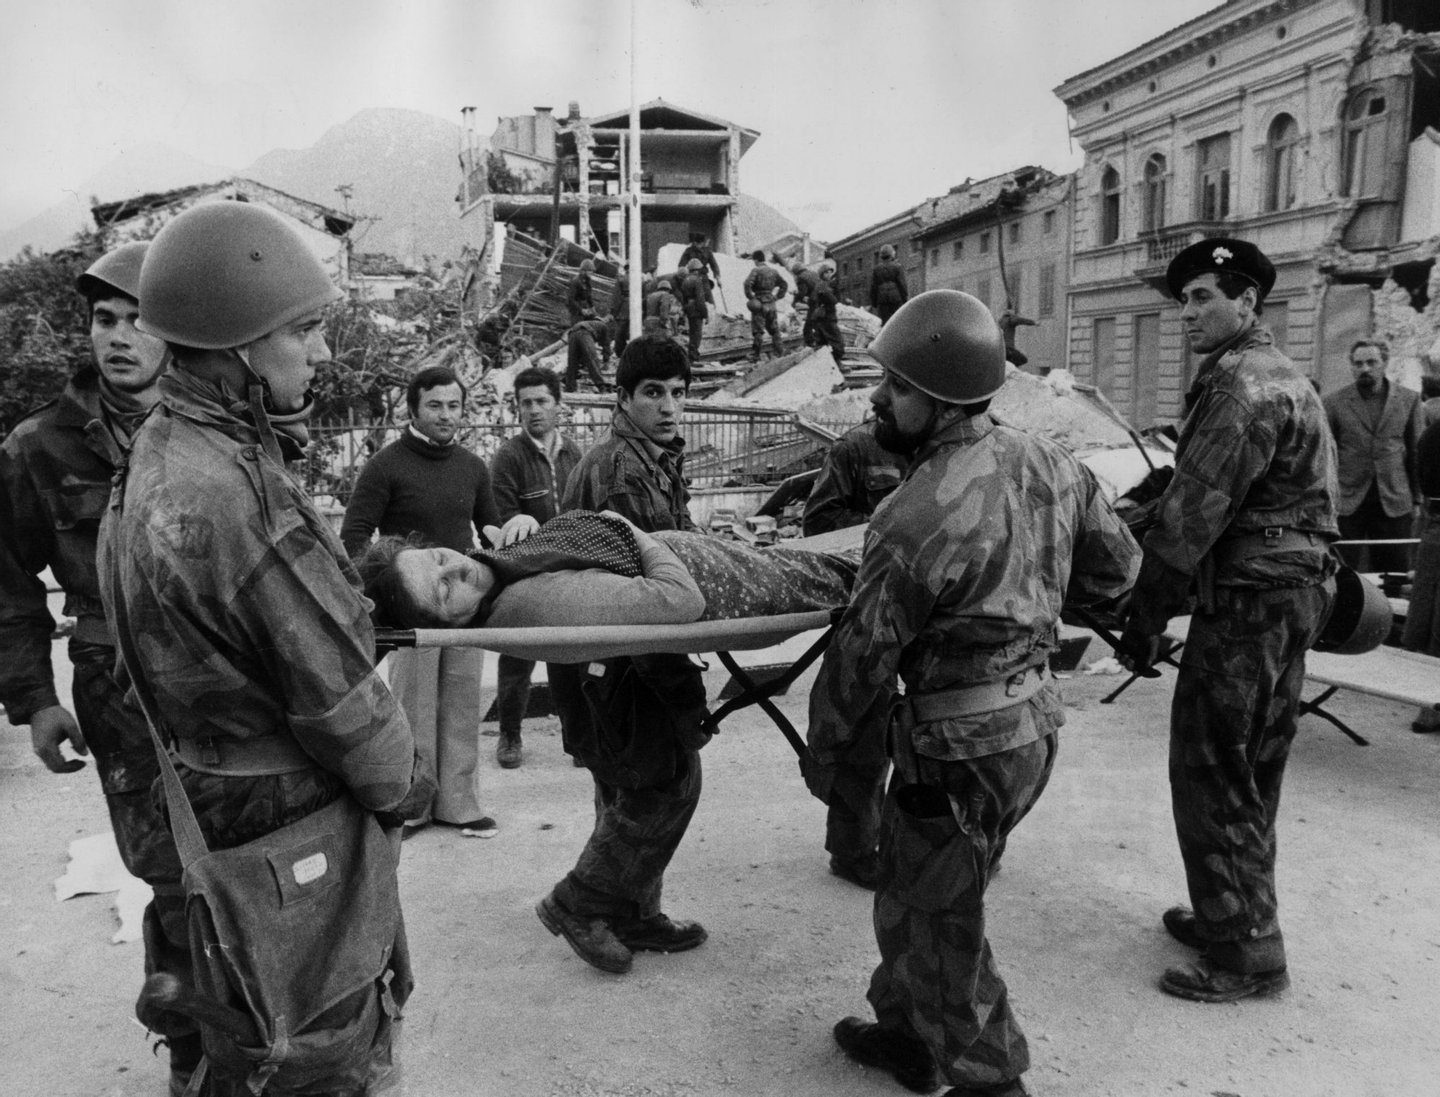 May 1976: Italian soldiers carry a woman on a stretcher to a place of safety after she was dug from the remains of her home after an earthquake in Udine which killed over a 1,000 people. (Photo by Livio Fioroni/Keystone/Getty Images)